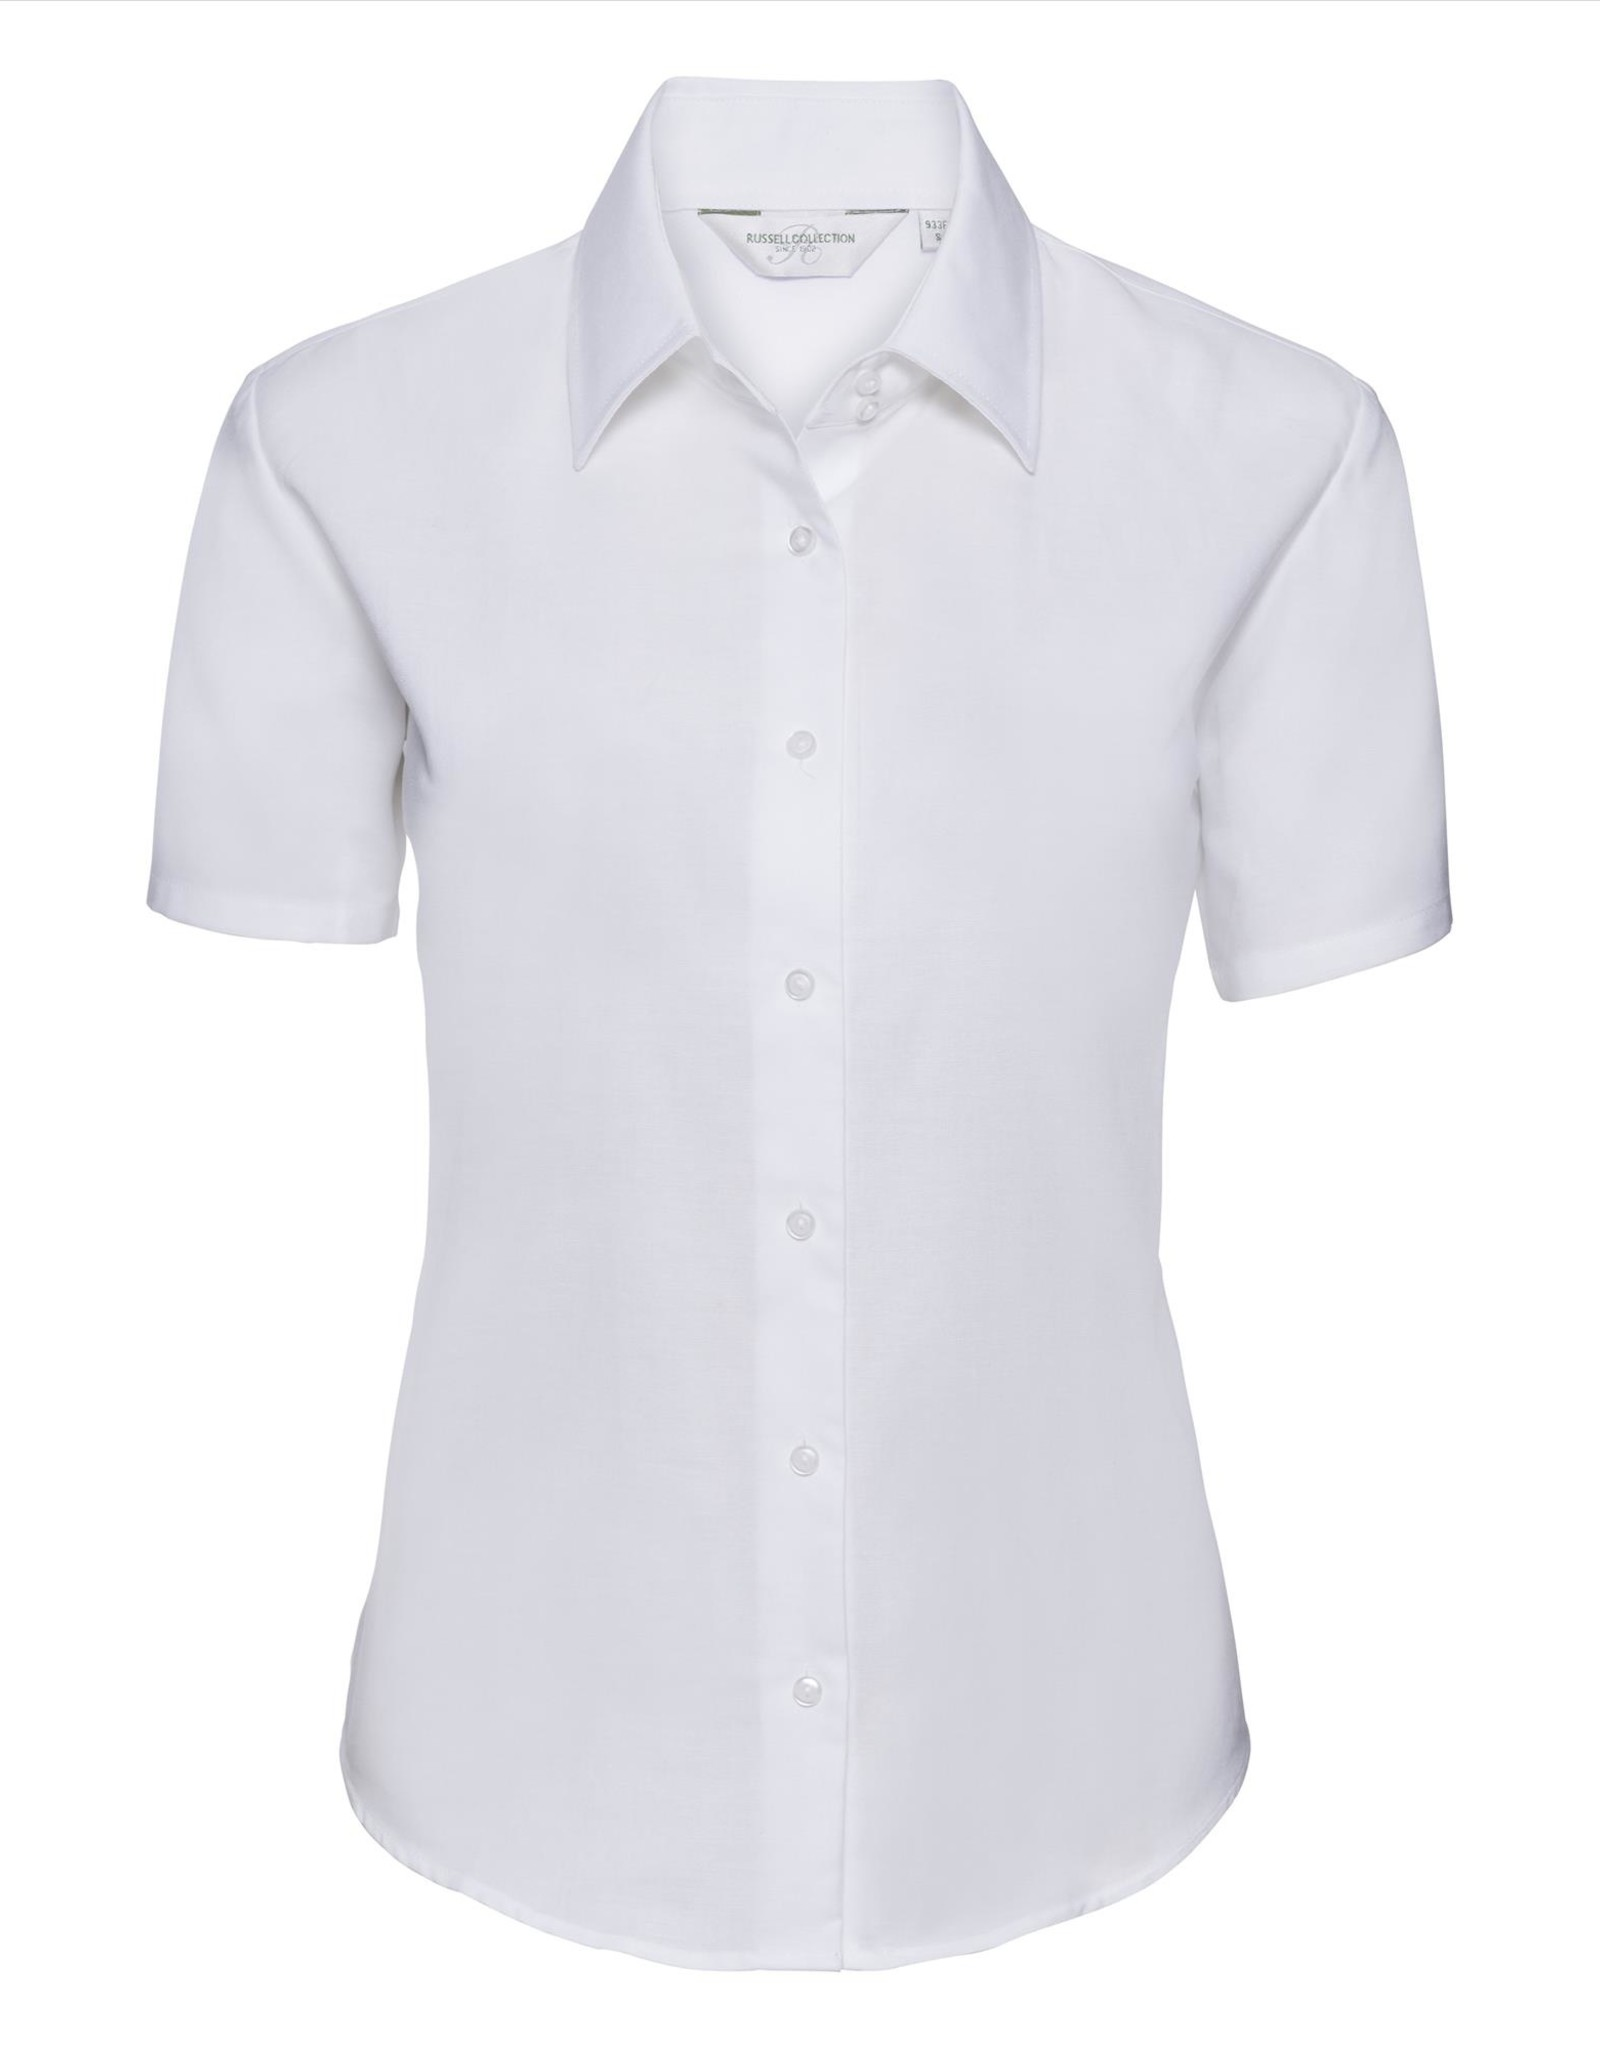 Russell BLOUSE Classic Oxford korte mouw wit